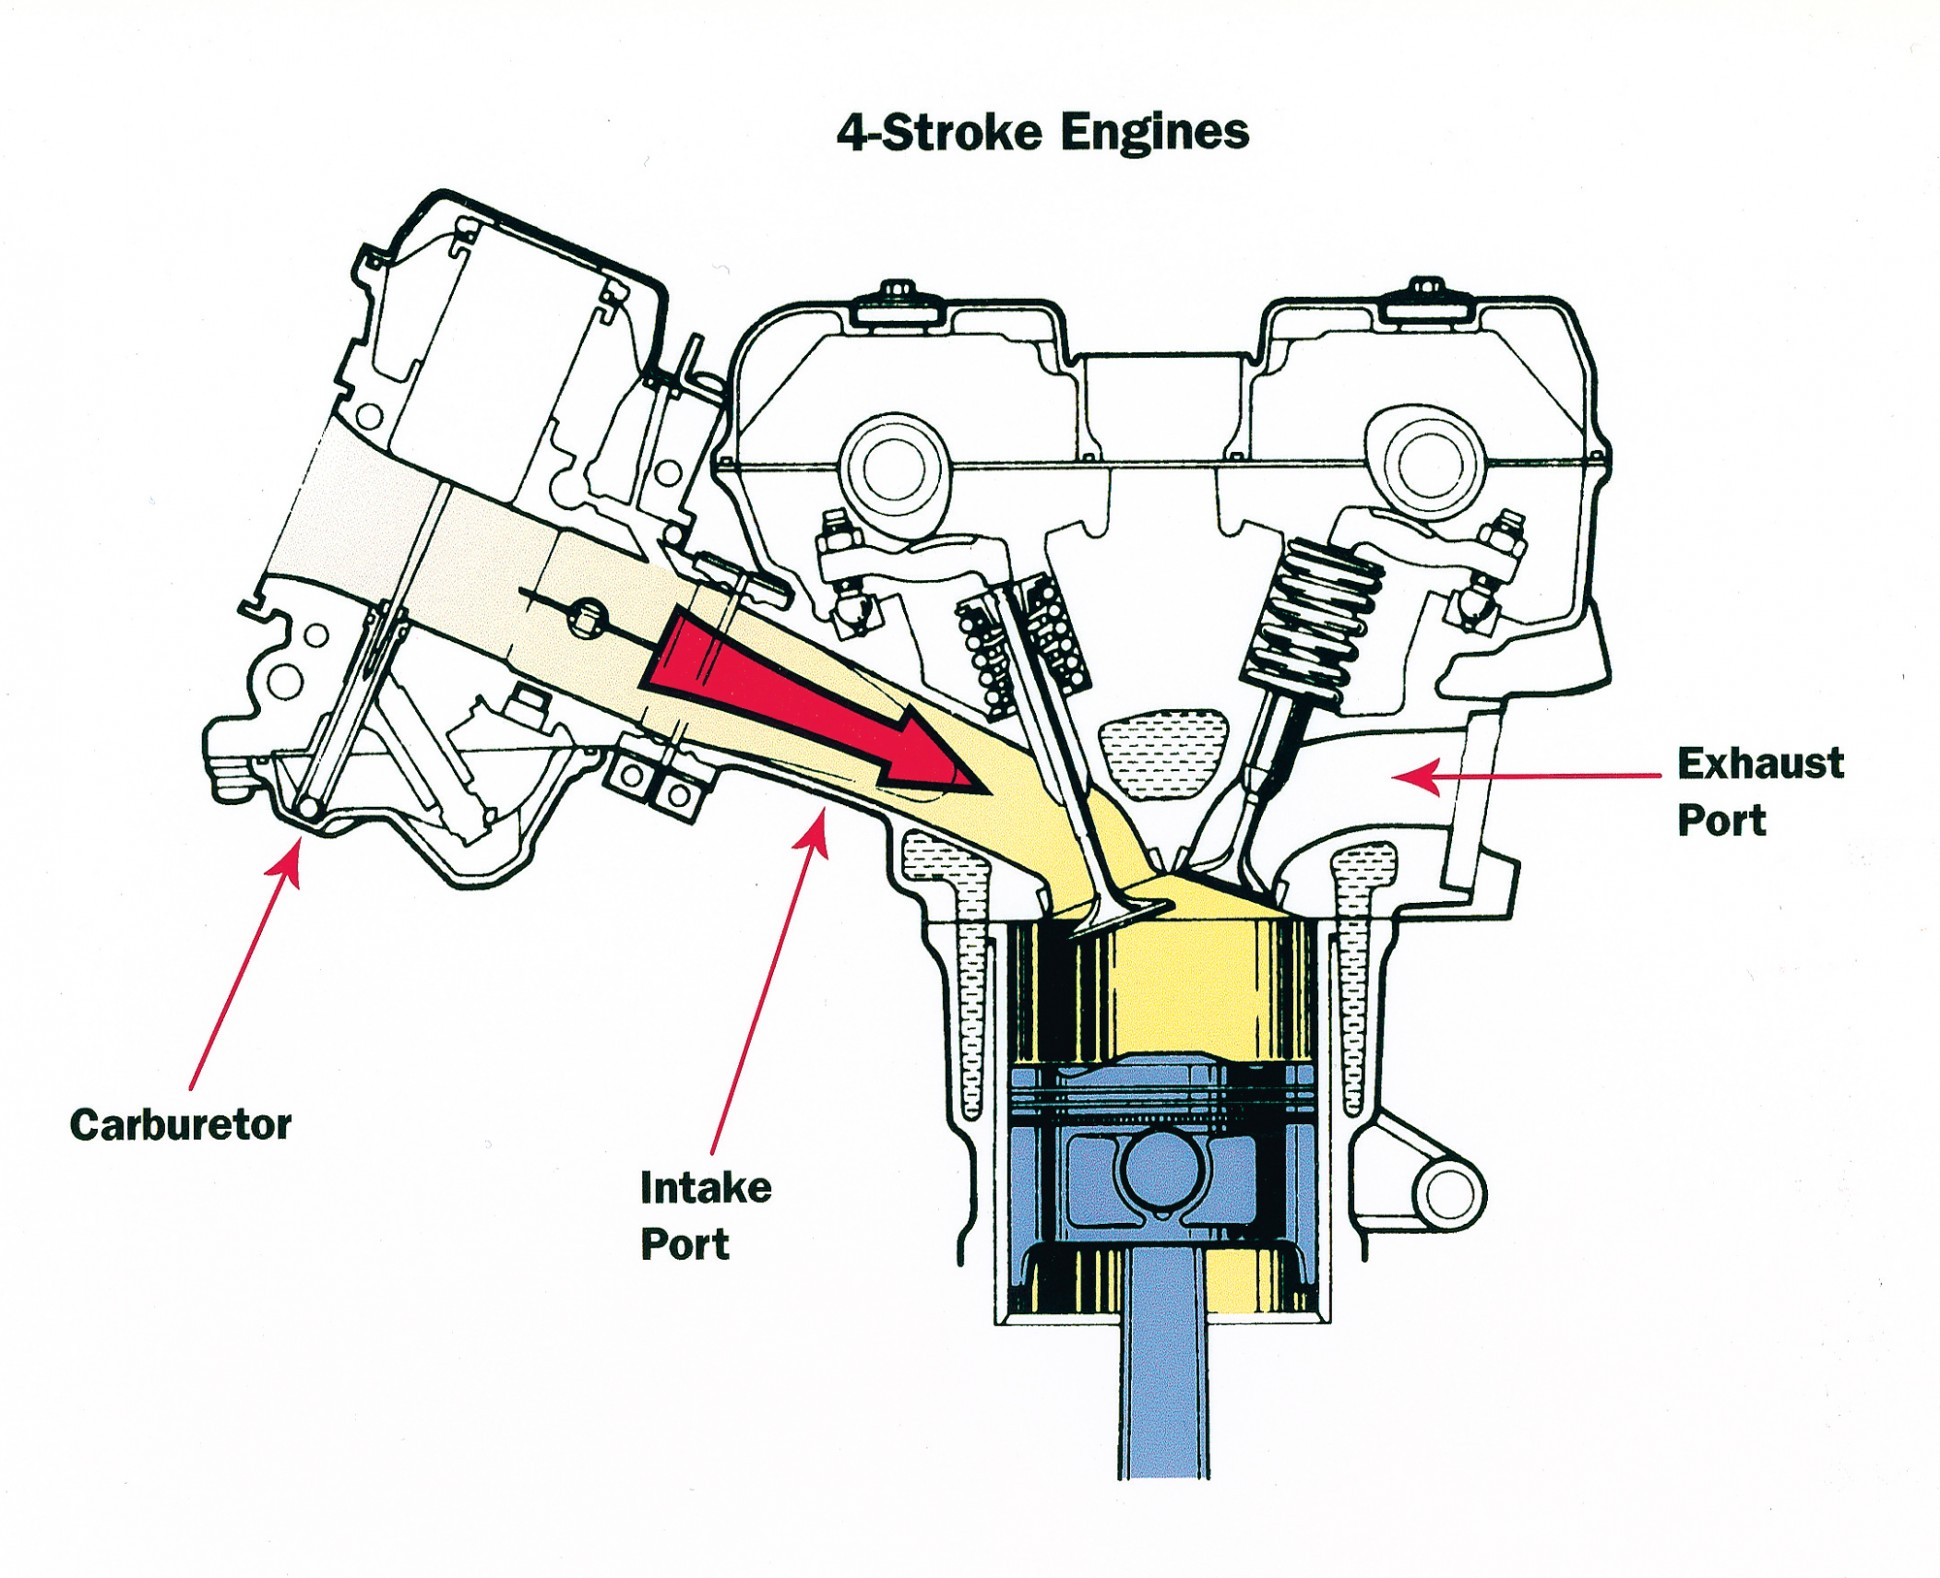 The Four-stroke Internal Combustion Engine